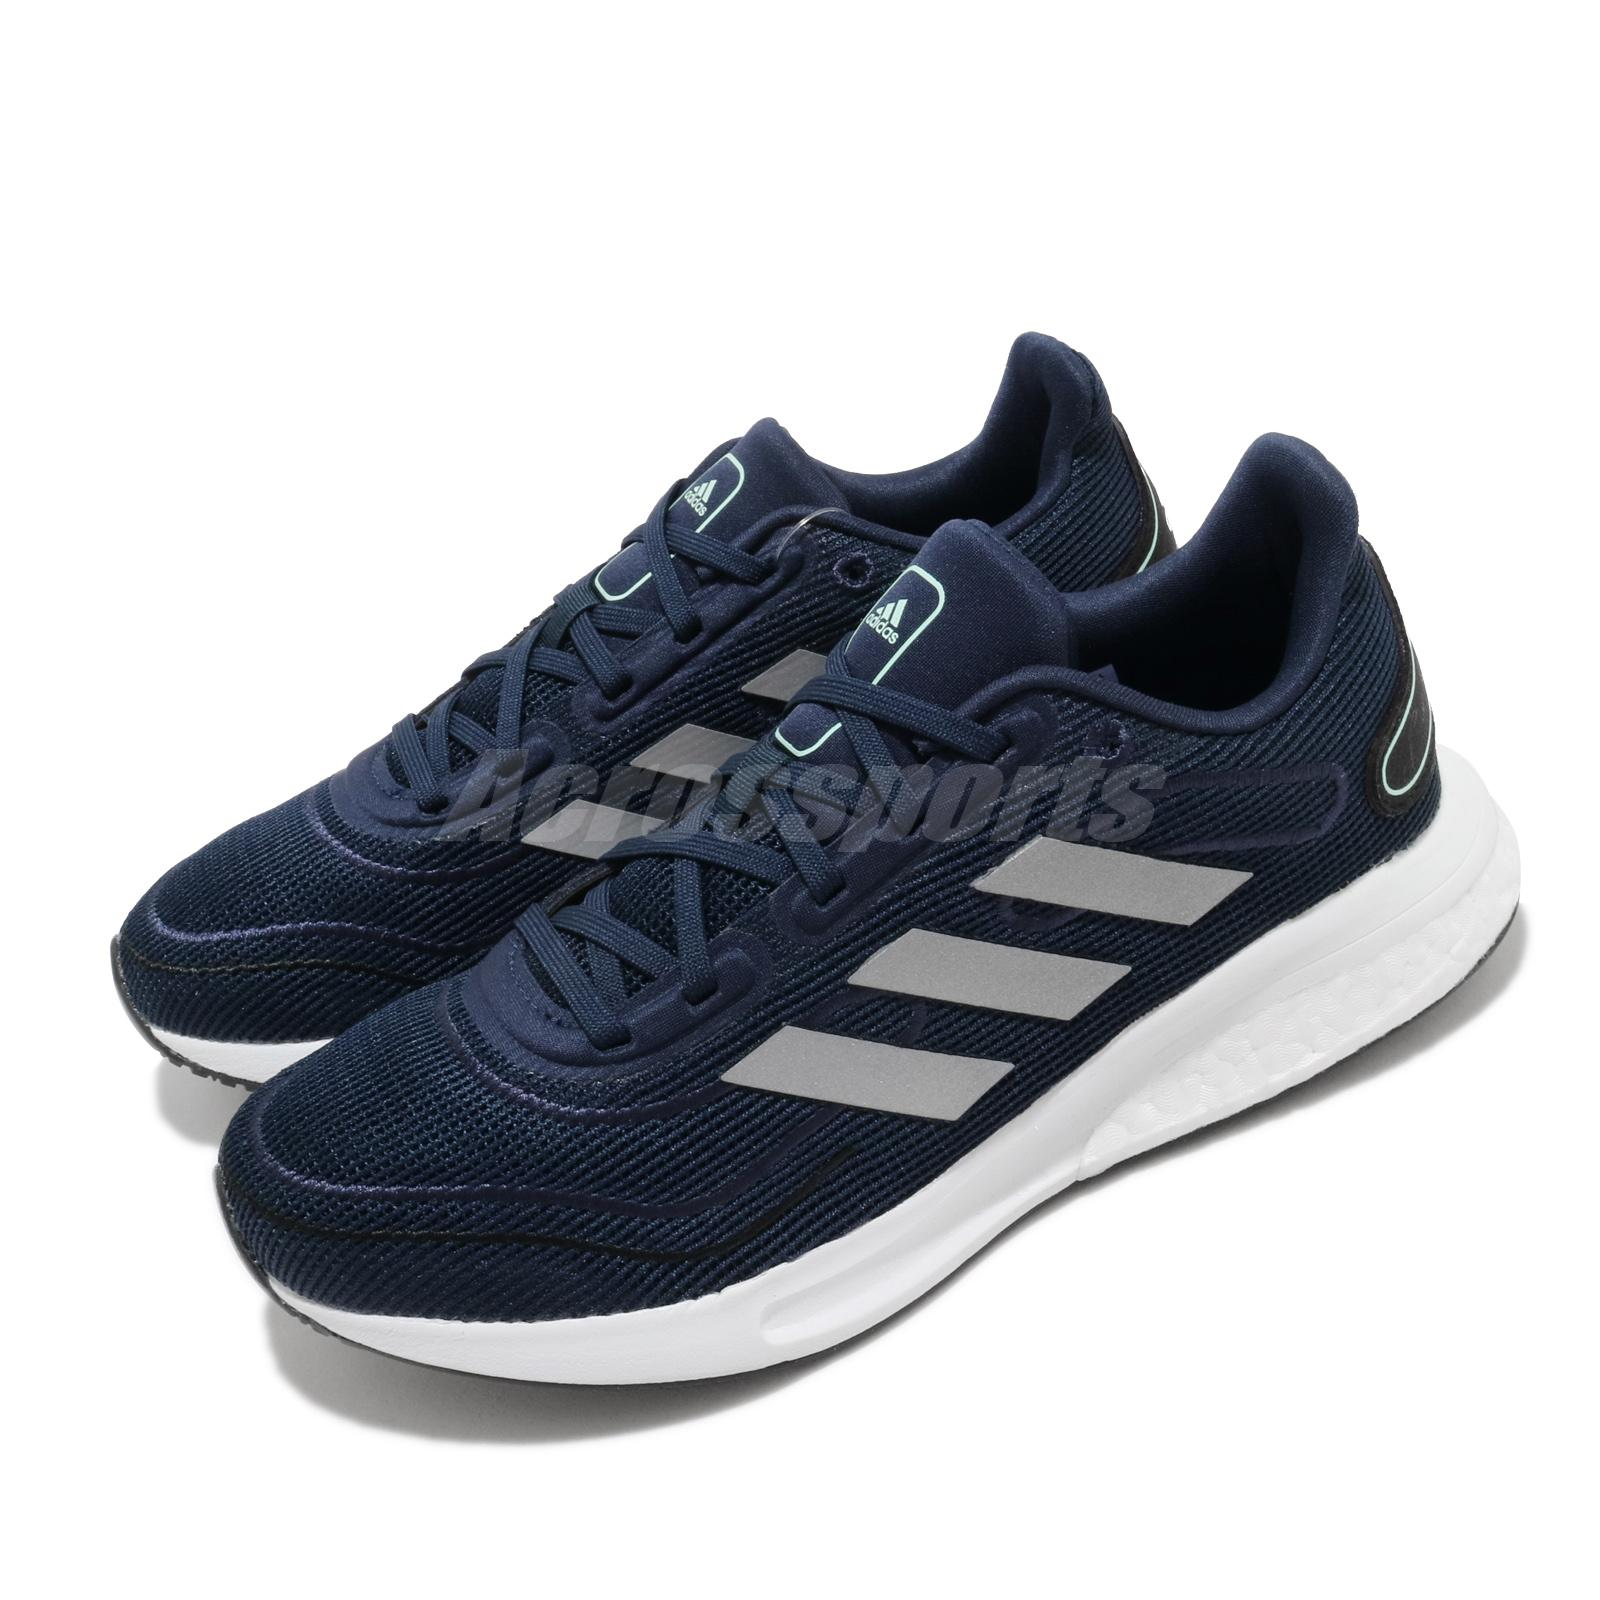 Details about adidas Supernova J Navy Silver Bounce Boost Kids Women  Running Shoes FW9111